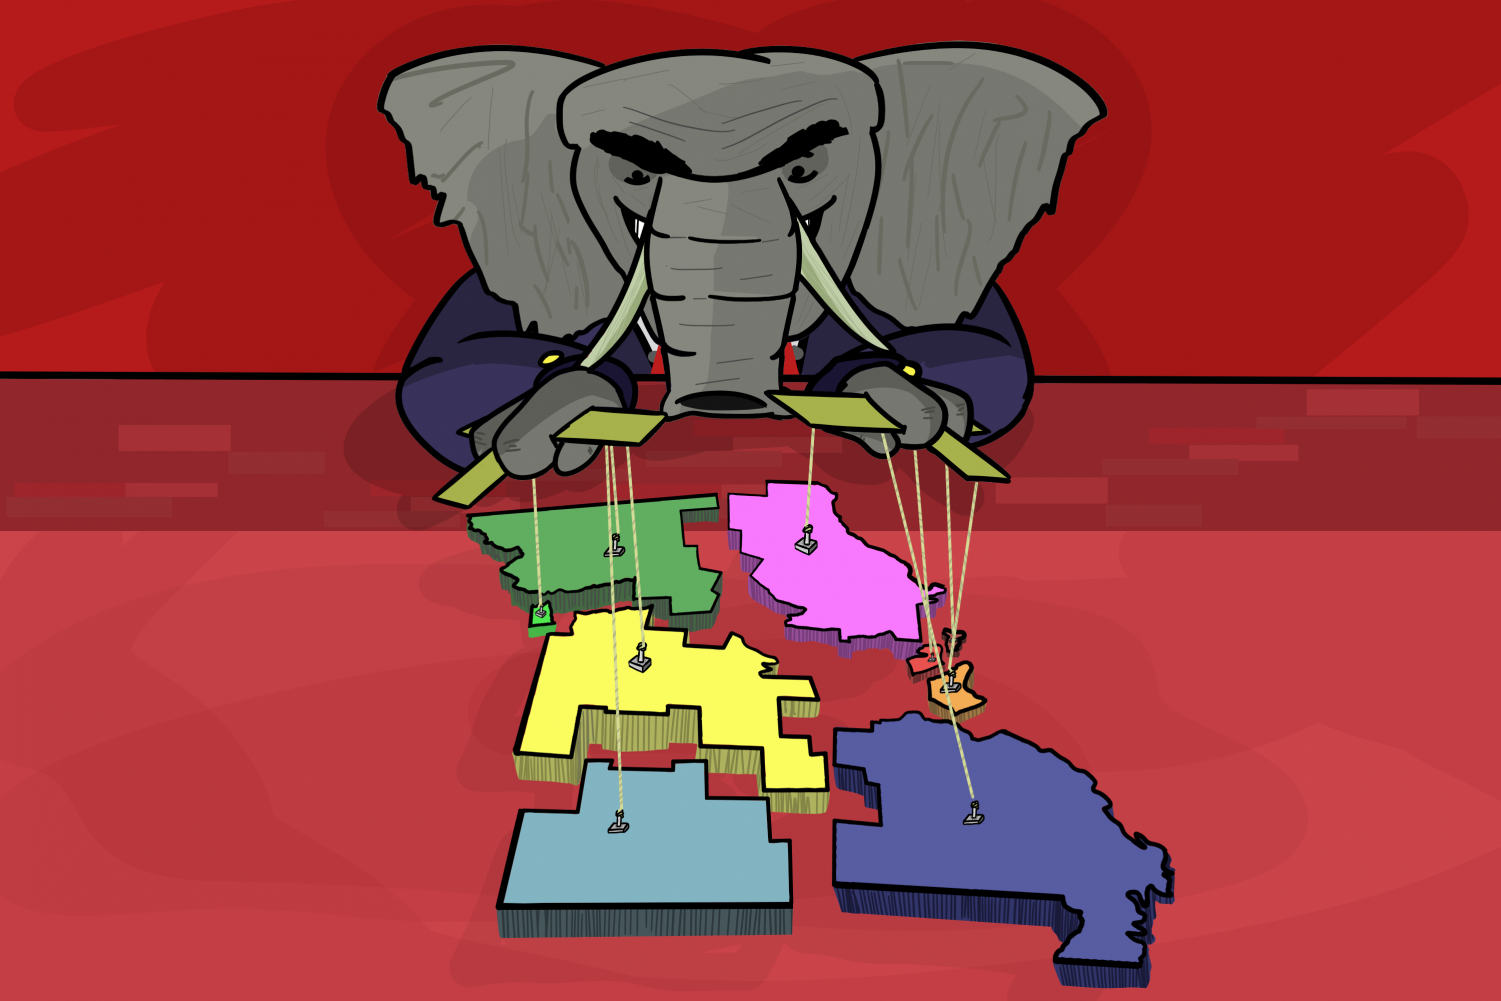 The Republican Party has thoroughly gerrymandered several states, including Missouri, to gain an advantage in elections.